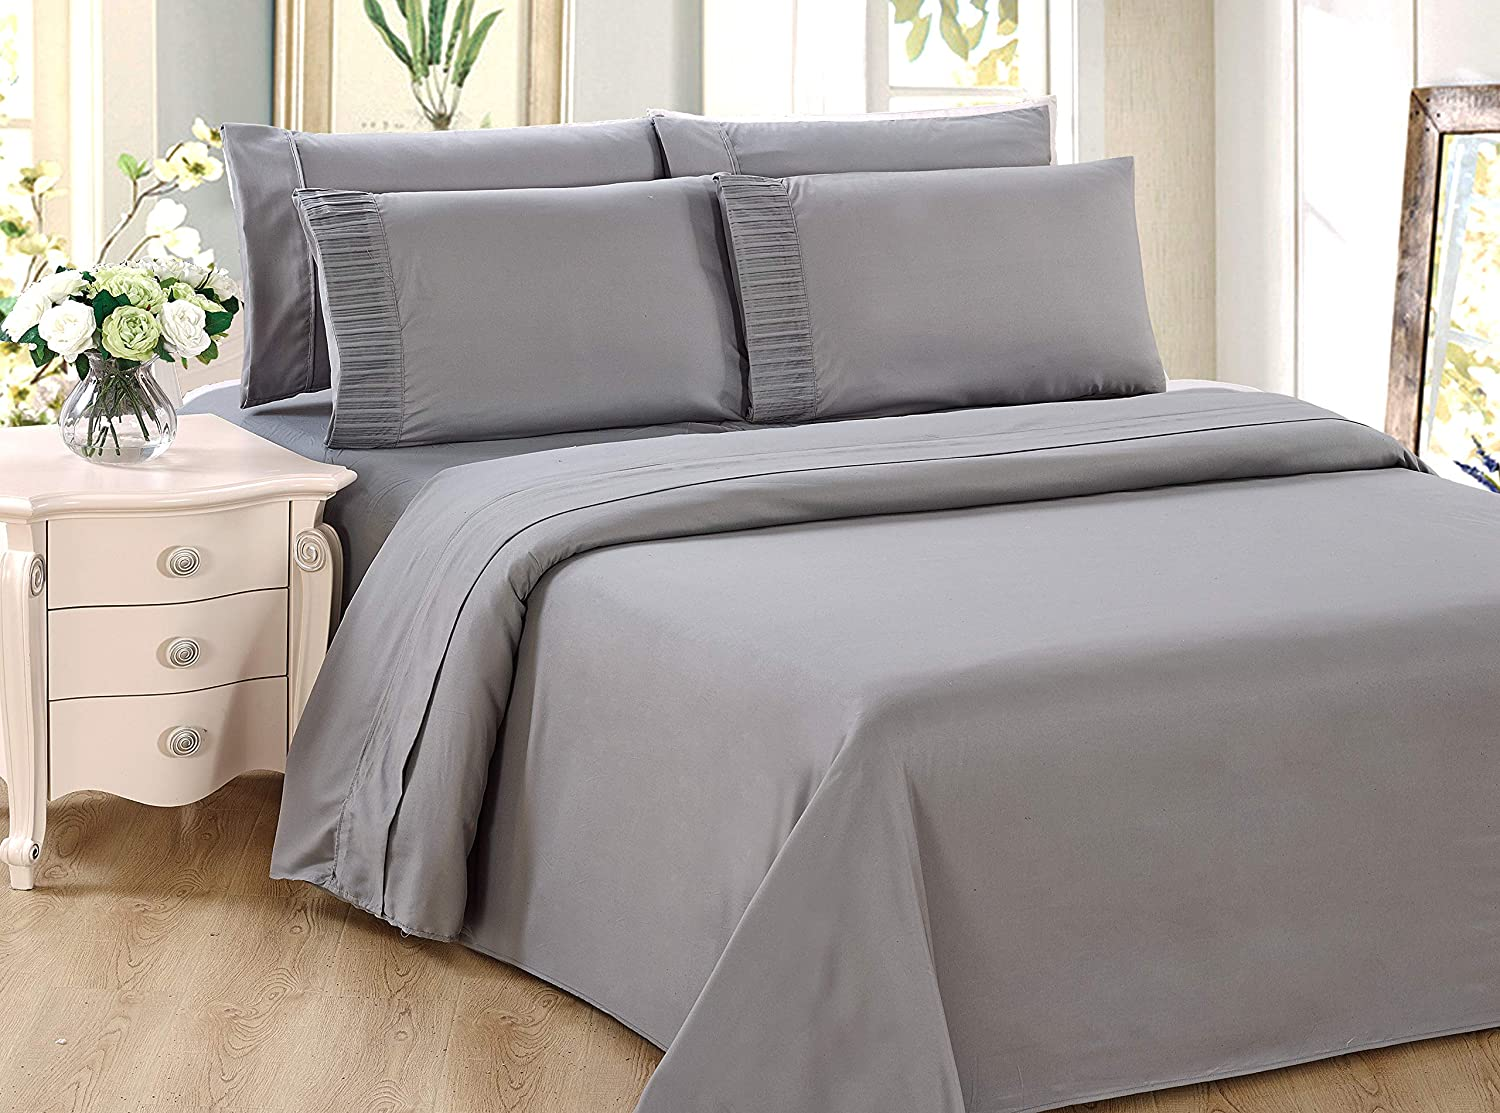 White Color King Size Bamboo Living Ultra Soft Silky Deep Pocket Solid Rayon from Bamboo 4 Pieces Sheet Set with 2 Pillowcases